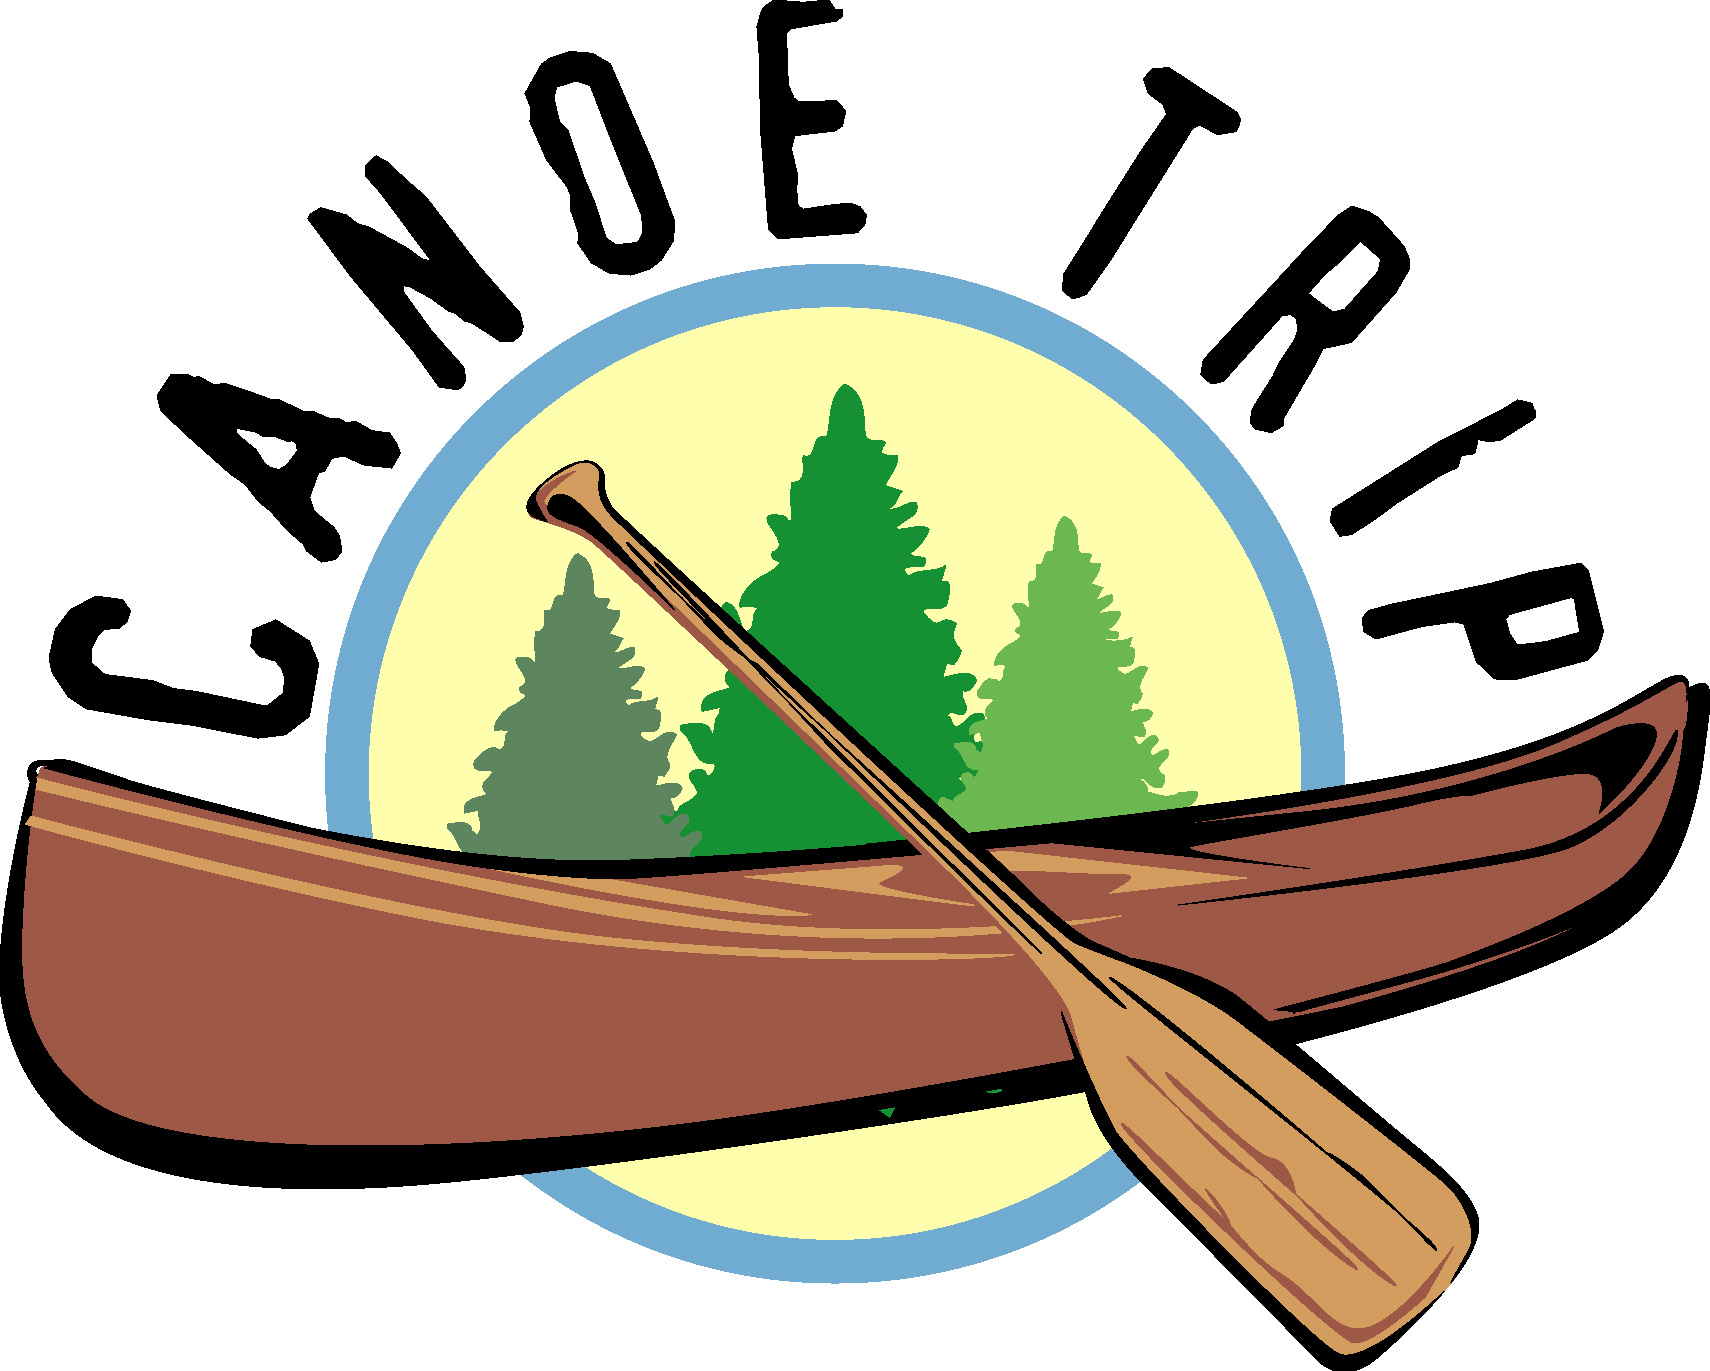 Canoing clipart image stock Canoeing clipart 5 » Clipart Station image stock